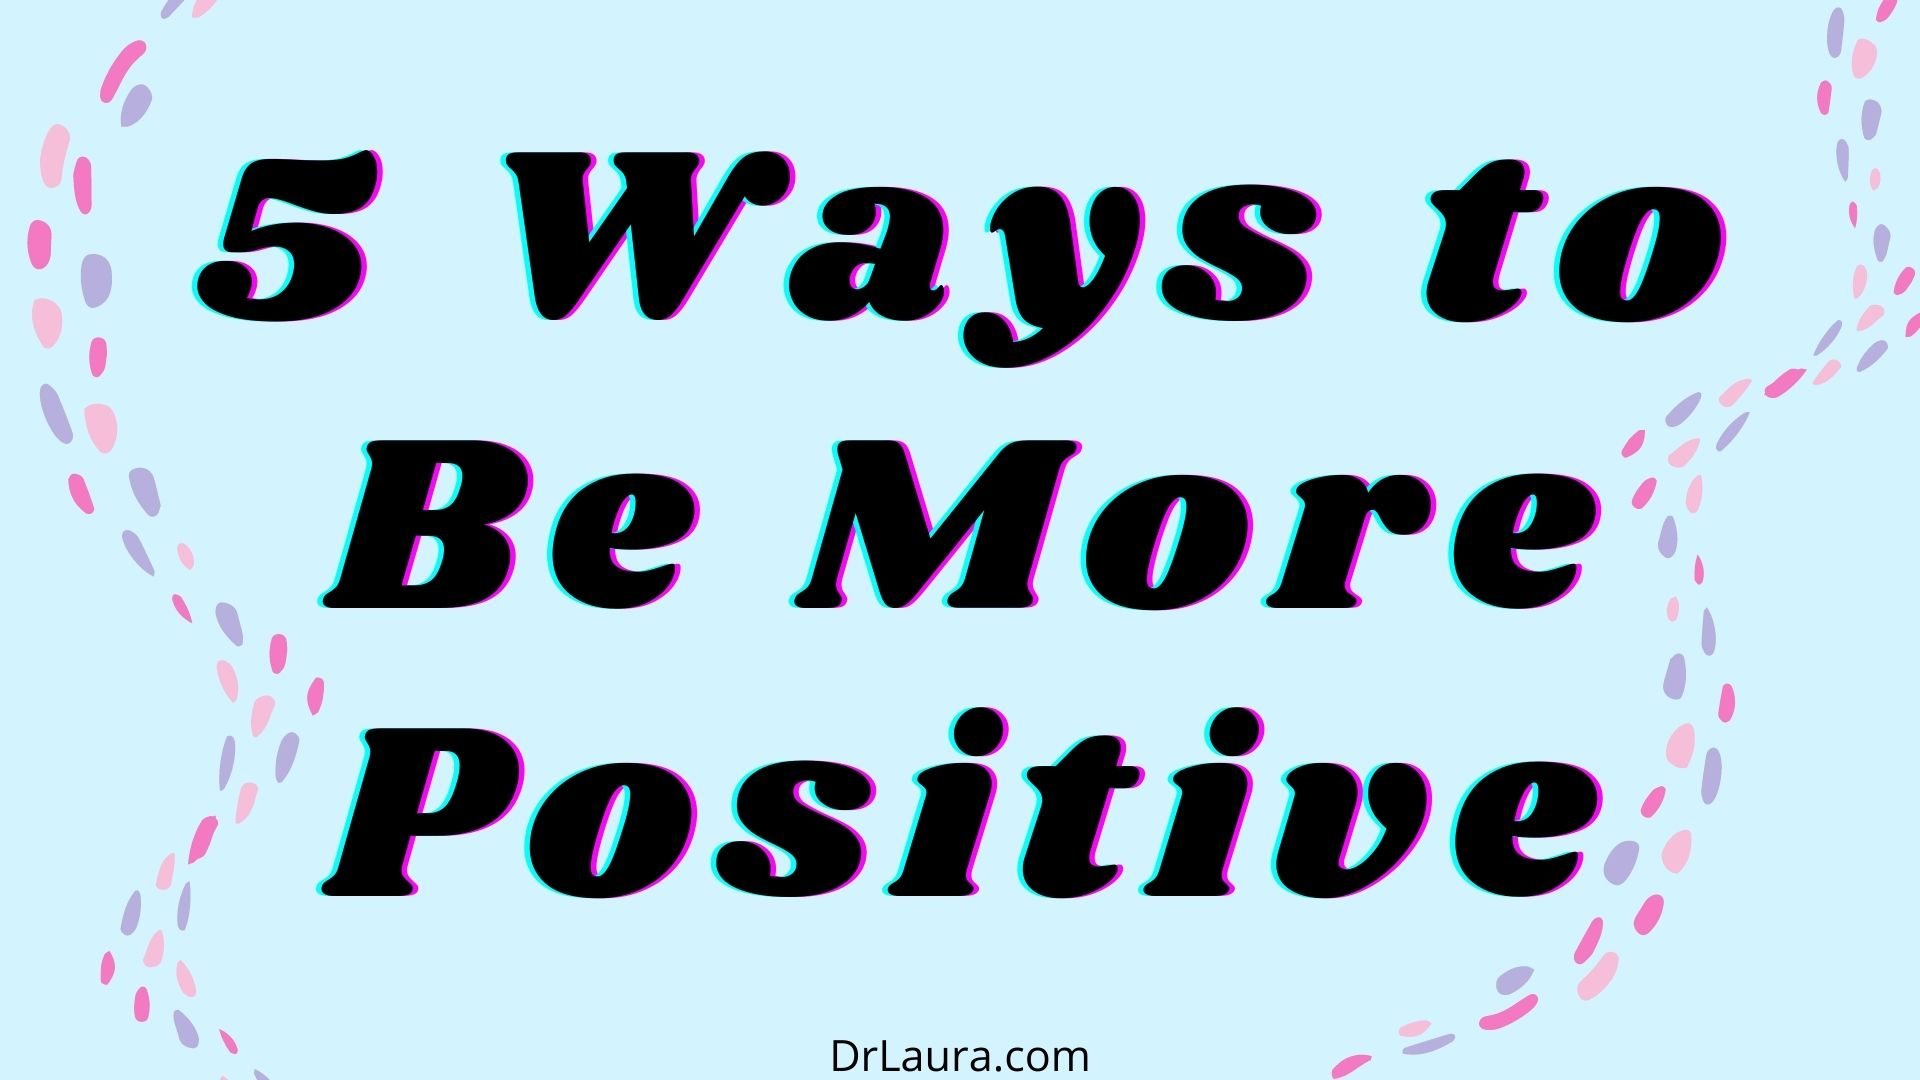 Blog: 5 Ways to Be More Positive